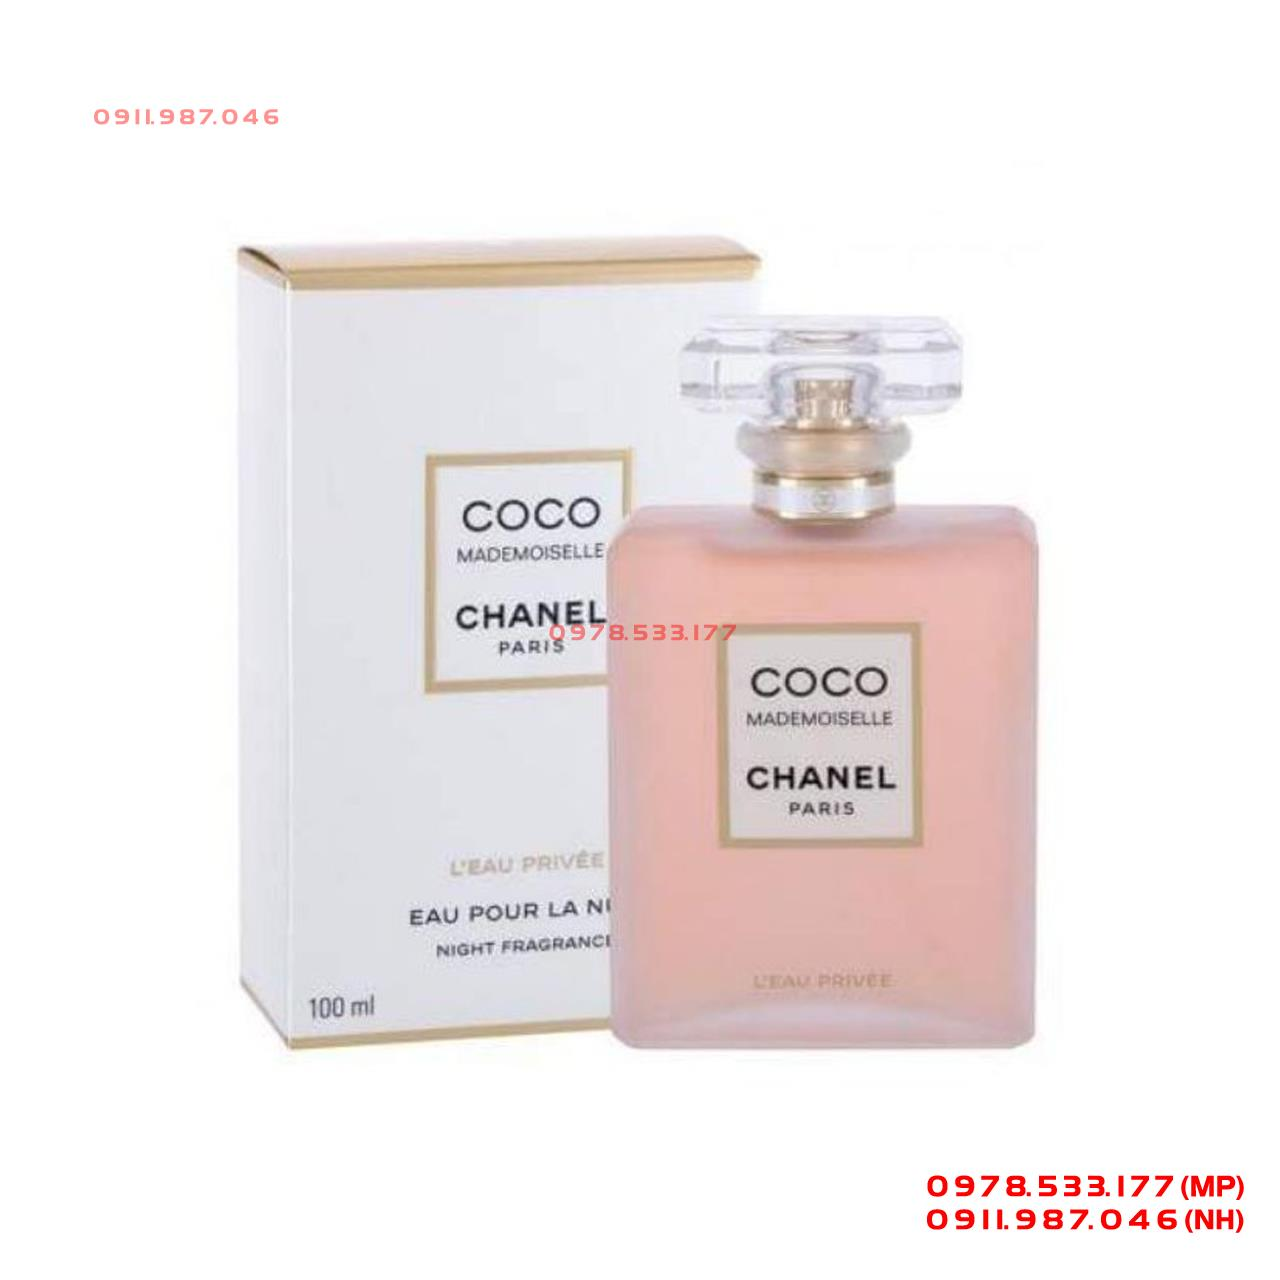 nuoc-hoa-nu-chanel-coco-mademoiselle-leau-privee-100ml-chinh-hang-pn100064